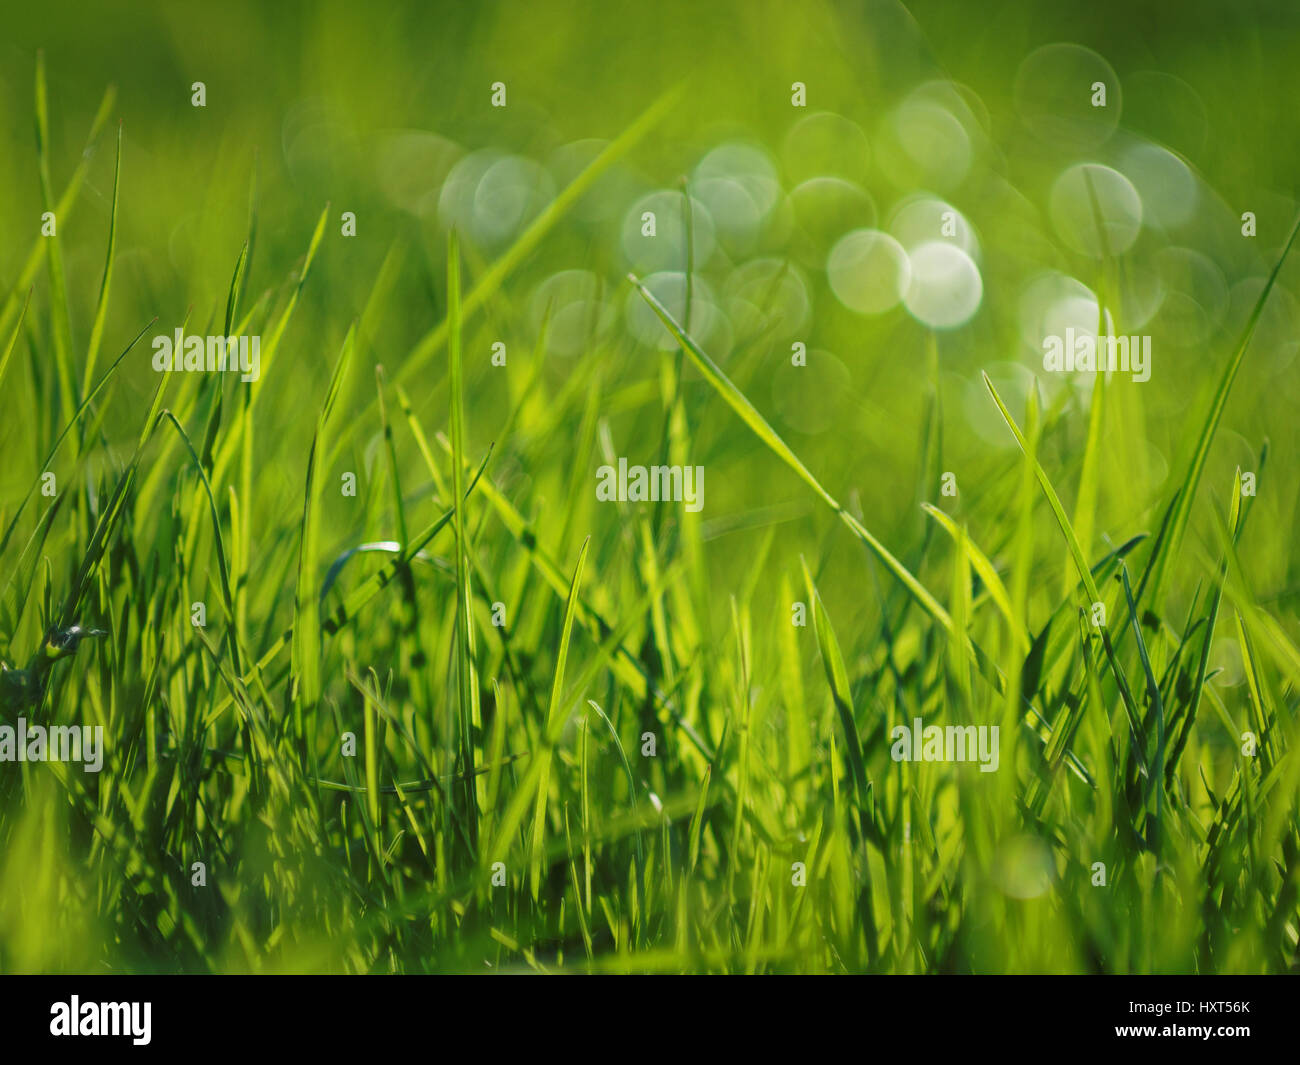 grass and bokeh bubbles on a sunny day - Stock Image